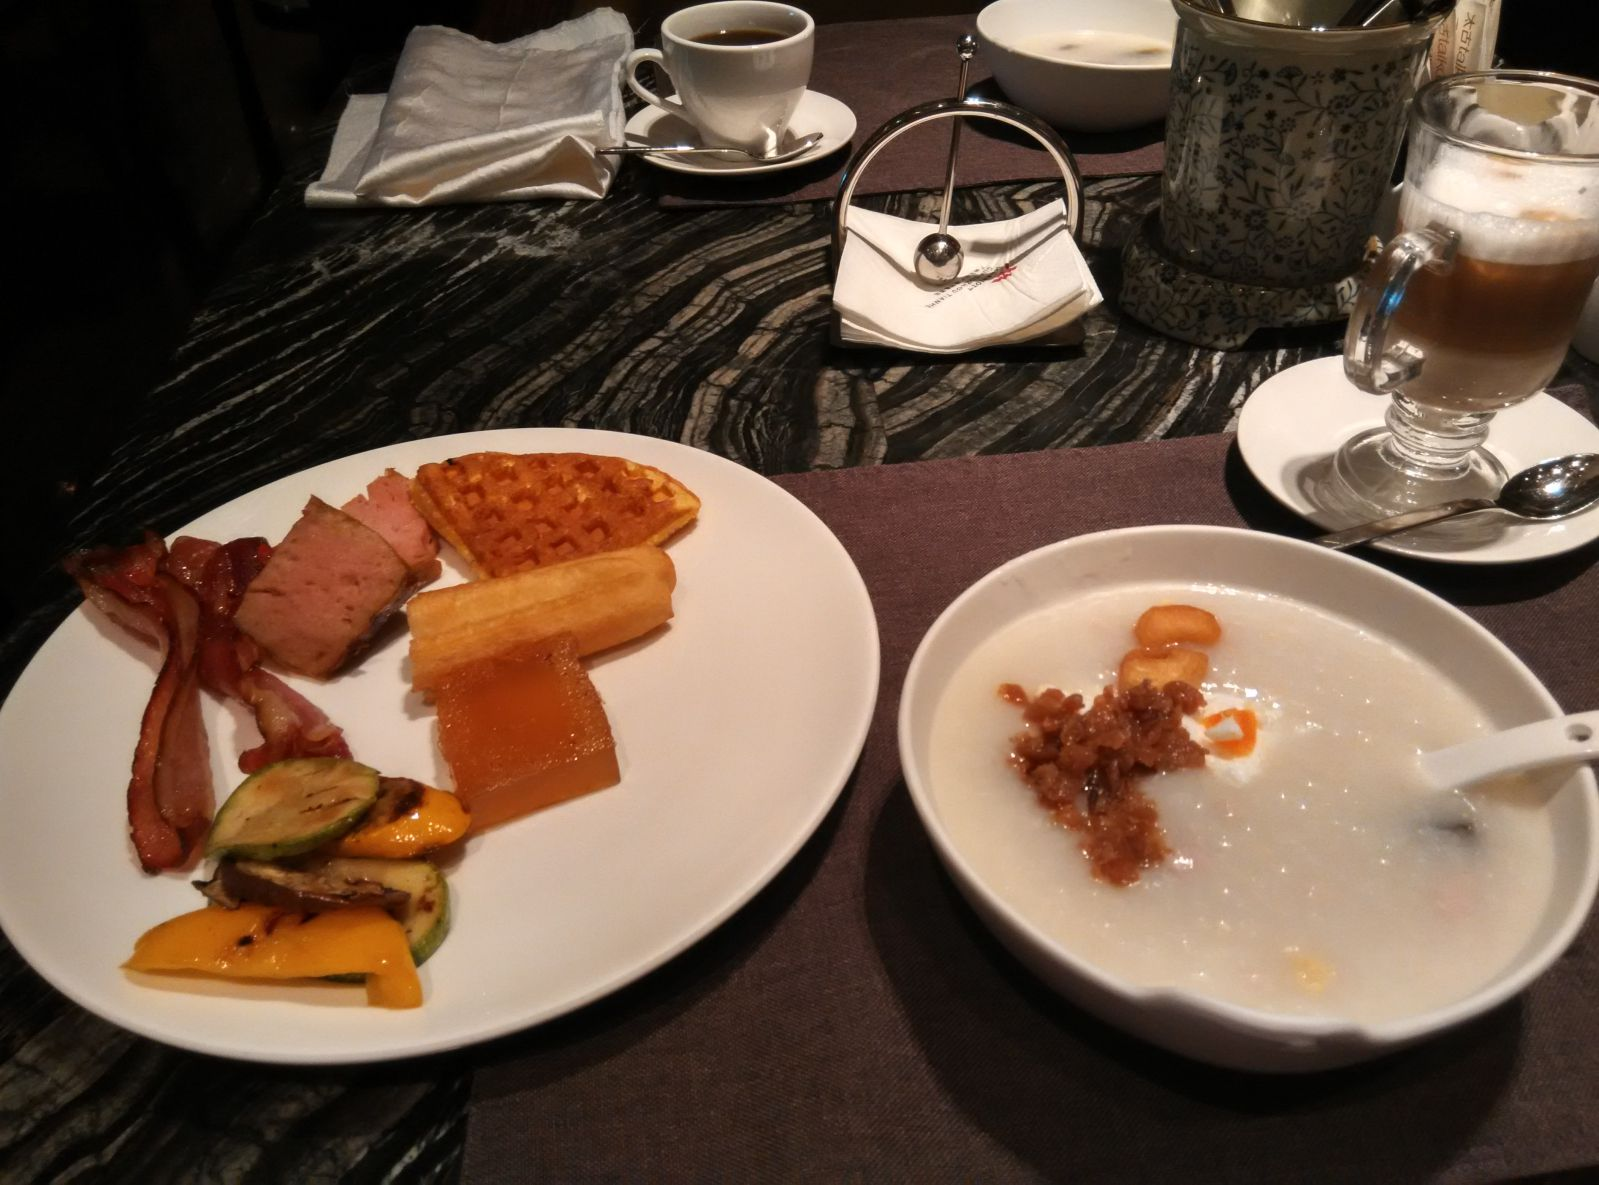 guangzhou-marriott-tianhe-breakfast-7